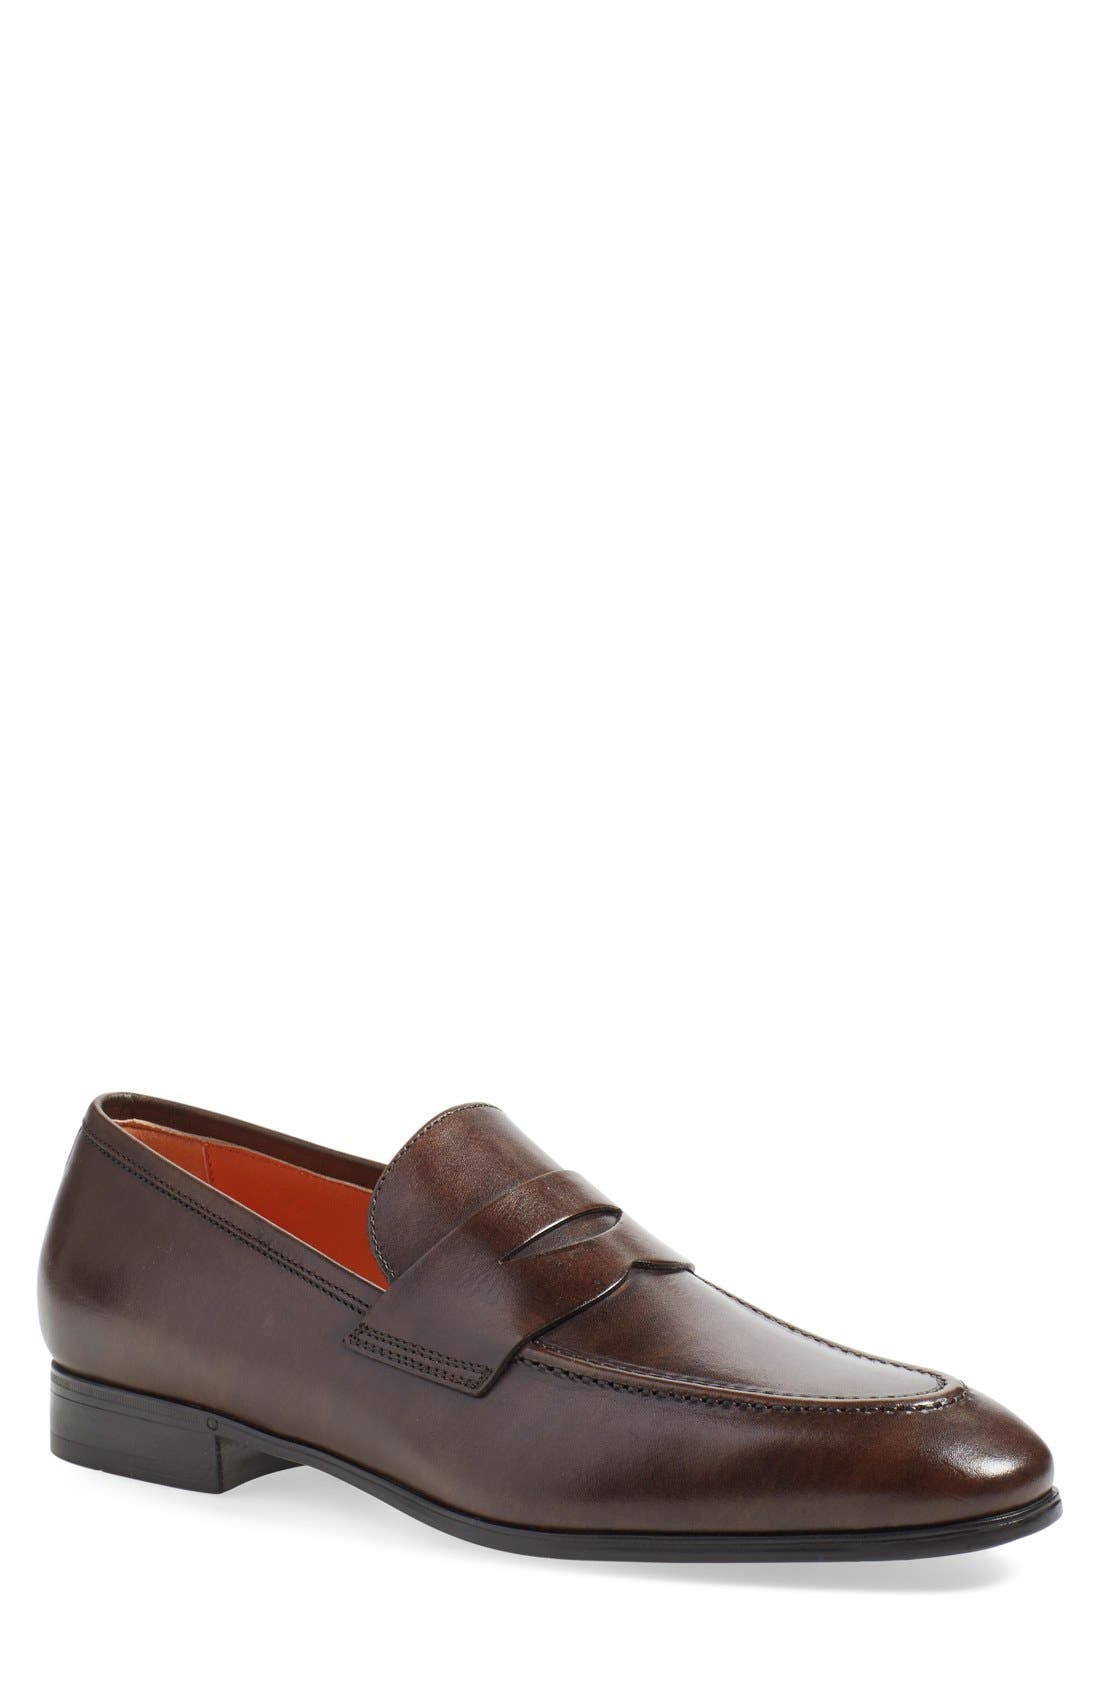 Alternate Image 1 Selected - Santoni 'Will' Penny Loafer (Men)